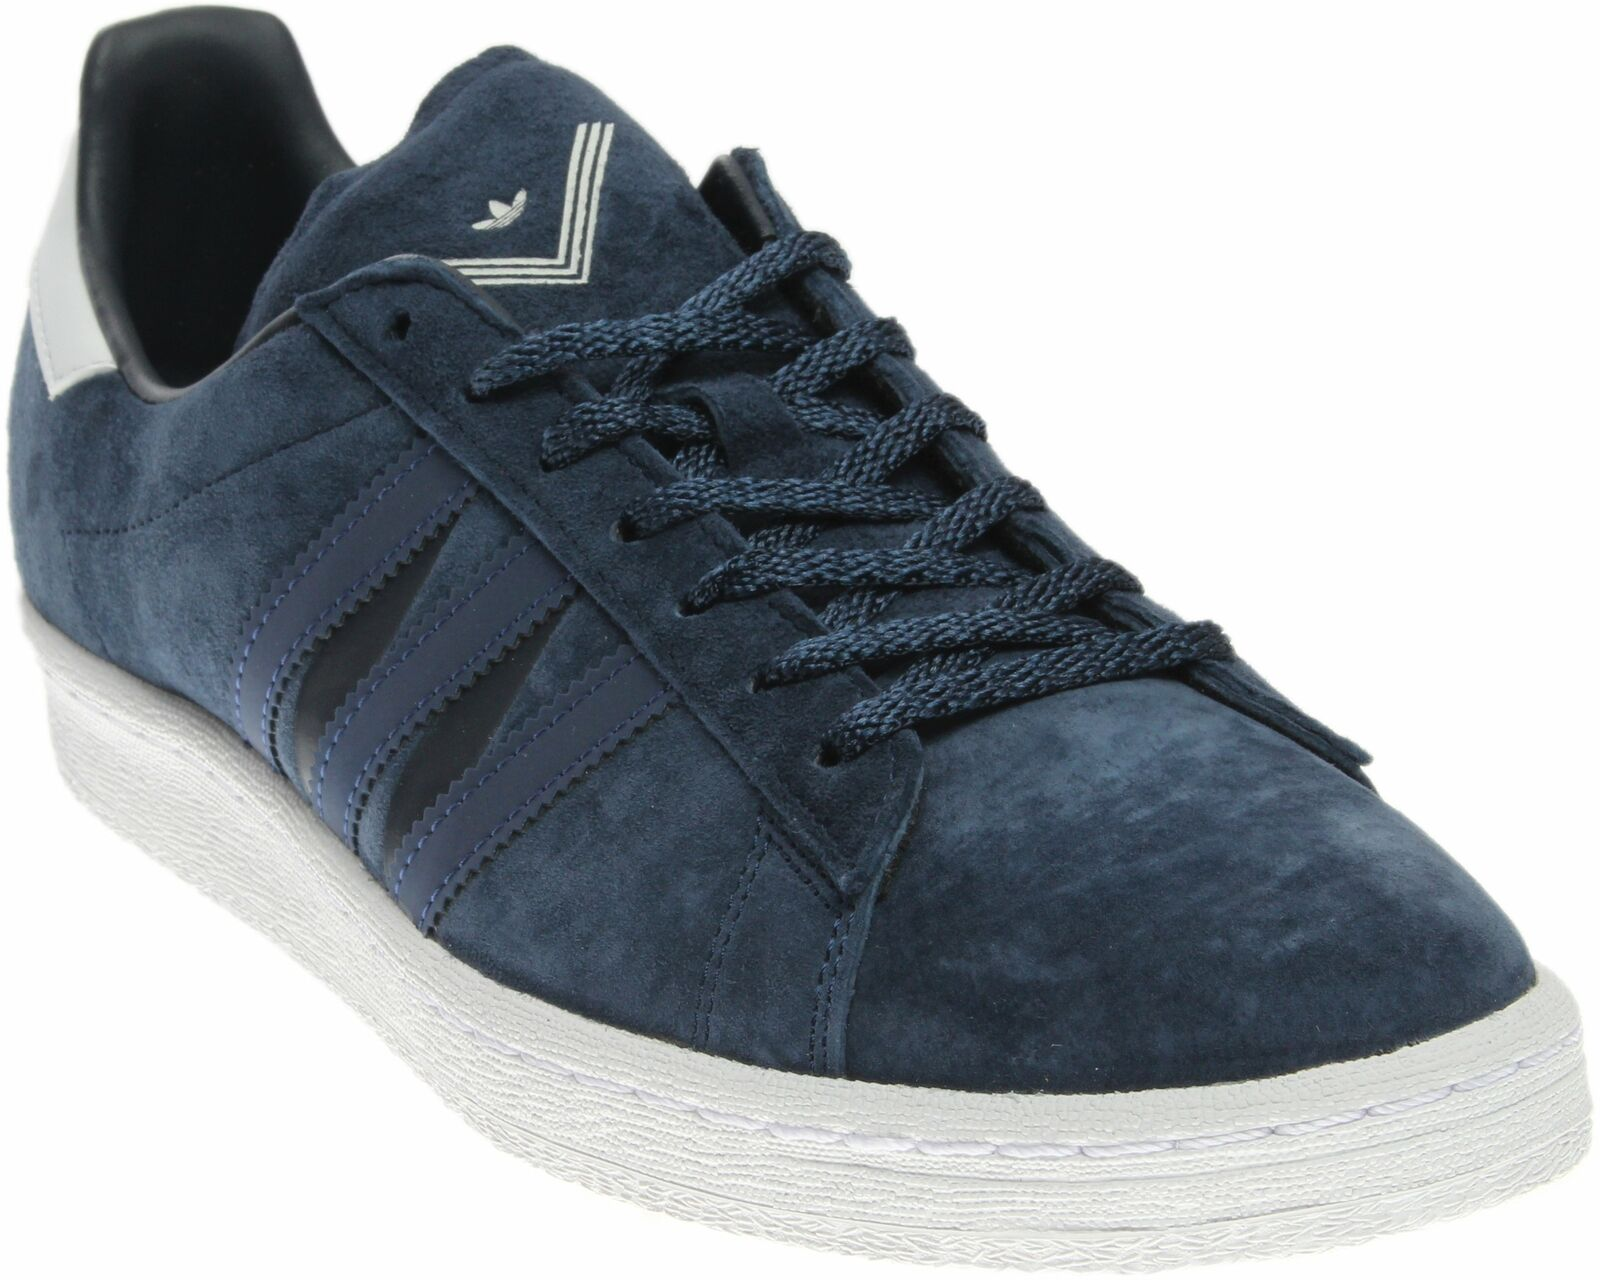 Adidas Campus 80S Sneakers - Navy - Mens